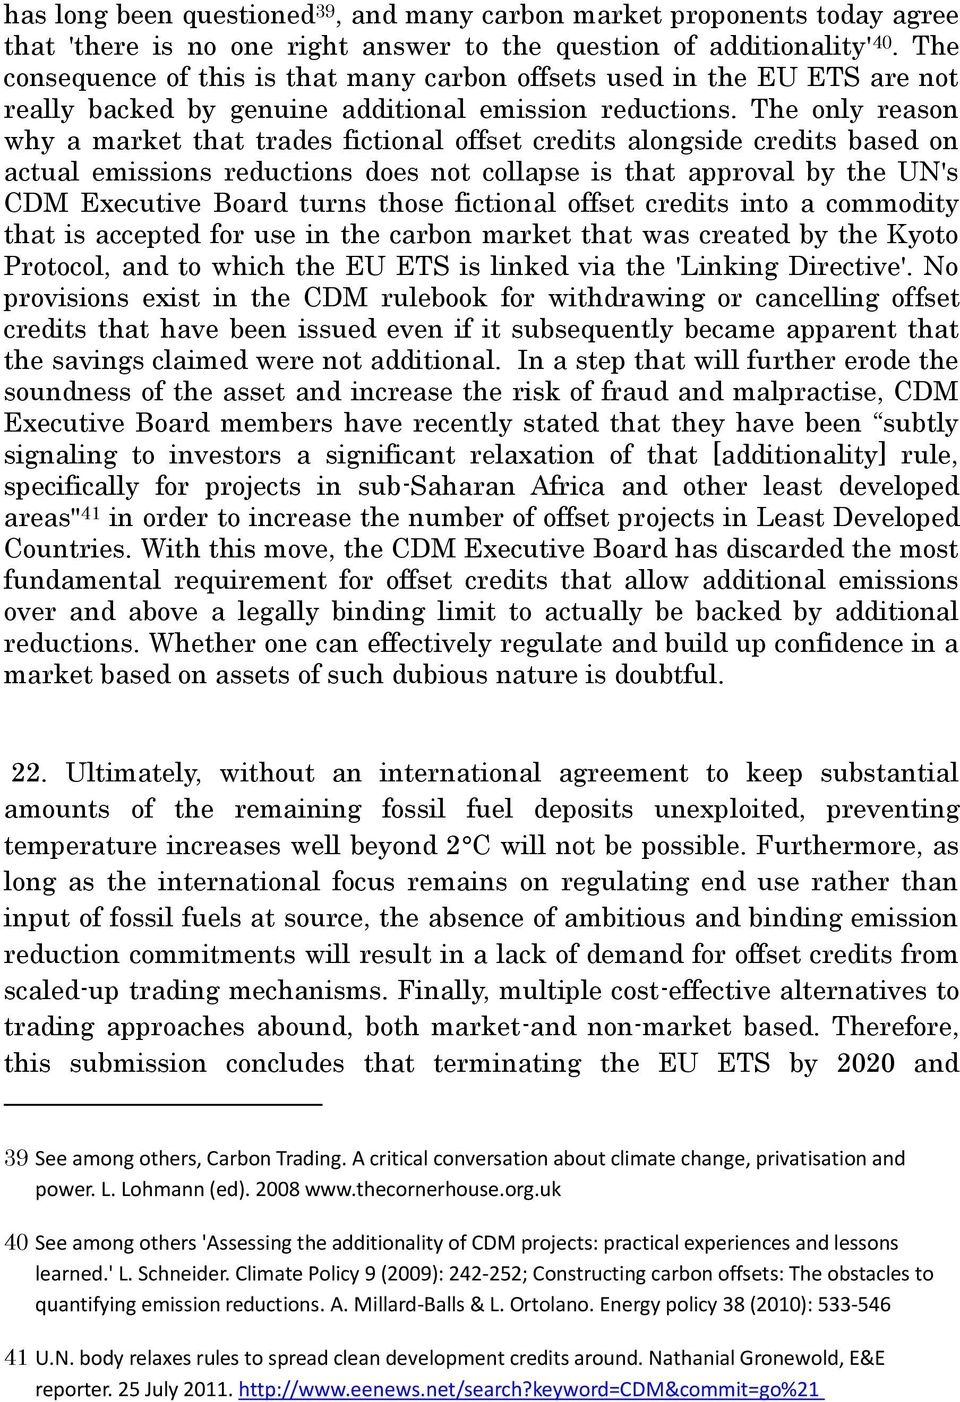 The only reason why a market that trades fictional offset credits alongside credits based on actual emissions reductions does not collapse is that approval by the UN's CDM Executive Board turns those